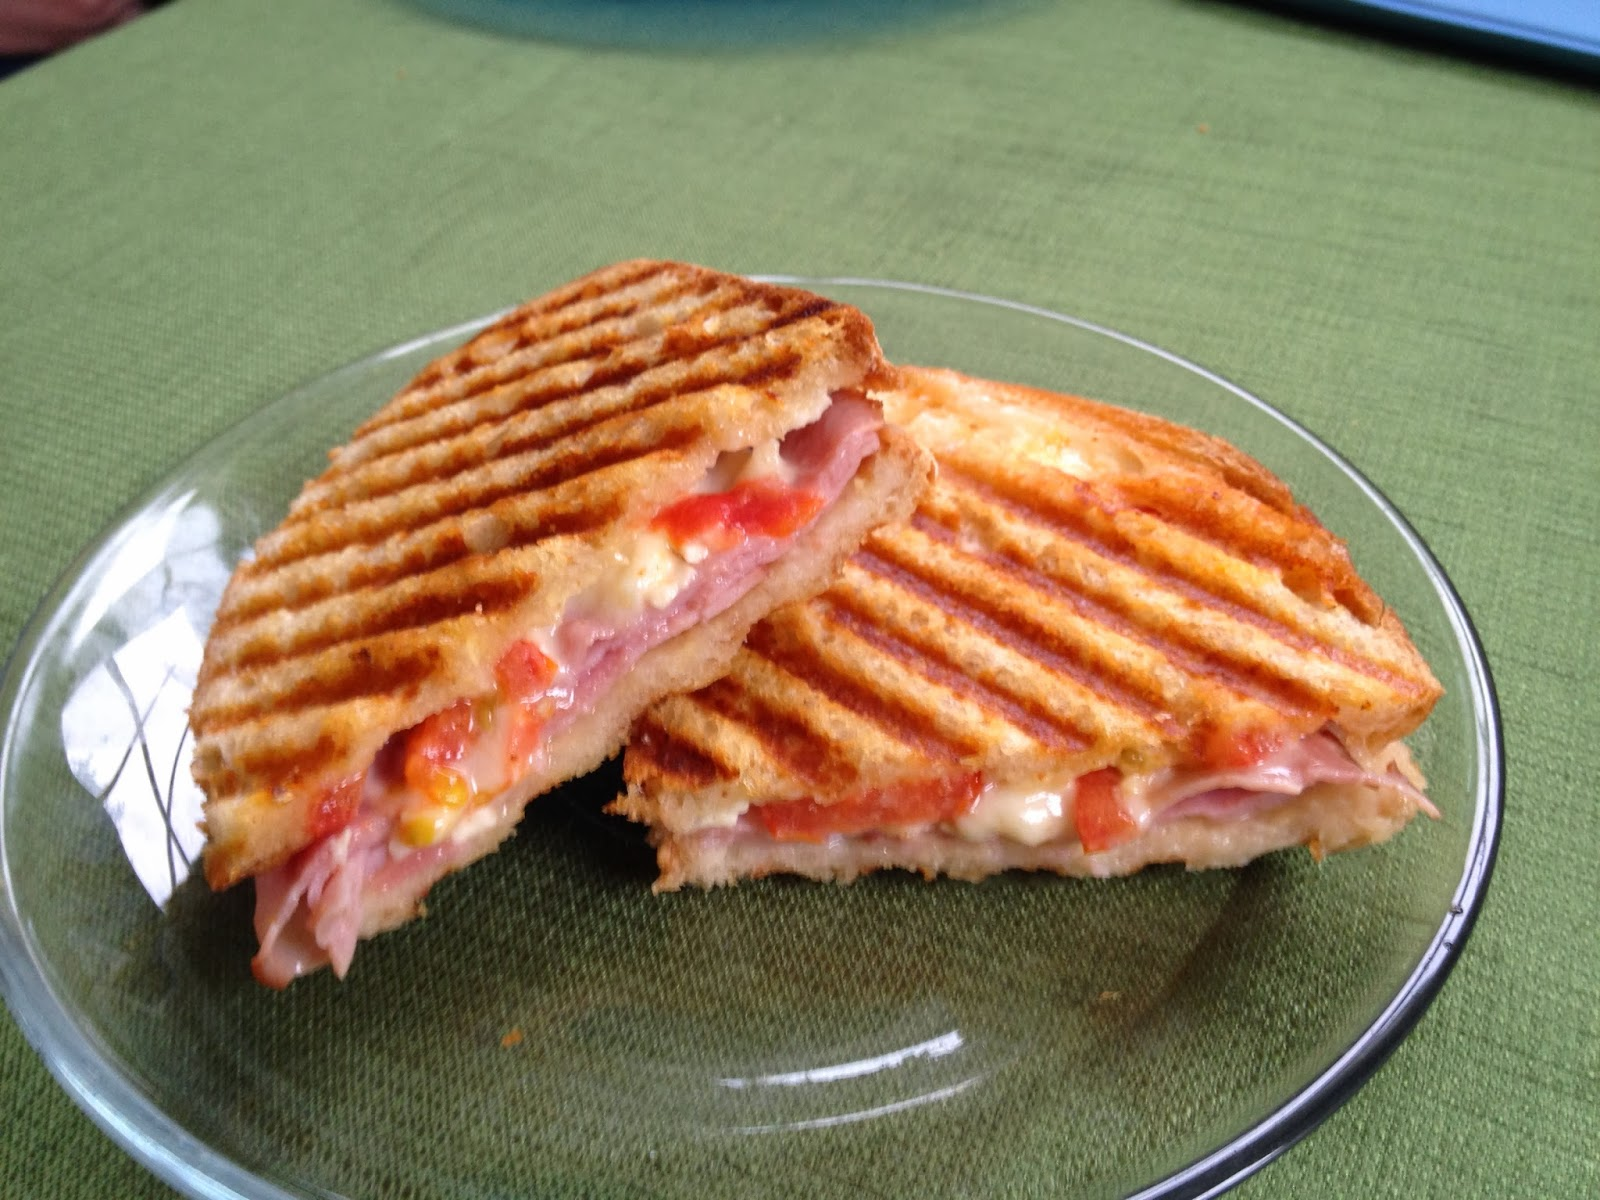 Planet of the Crepes: Ham and brie panini